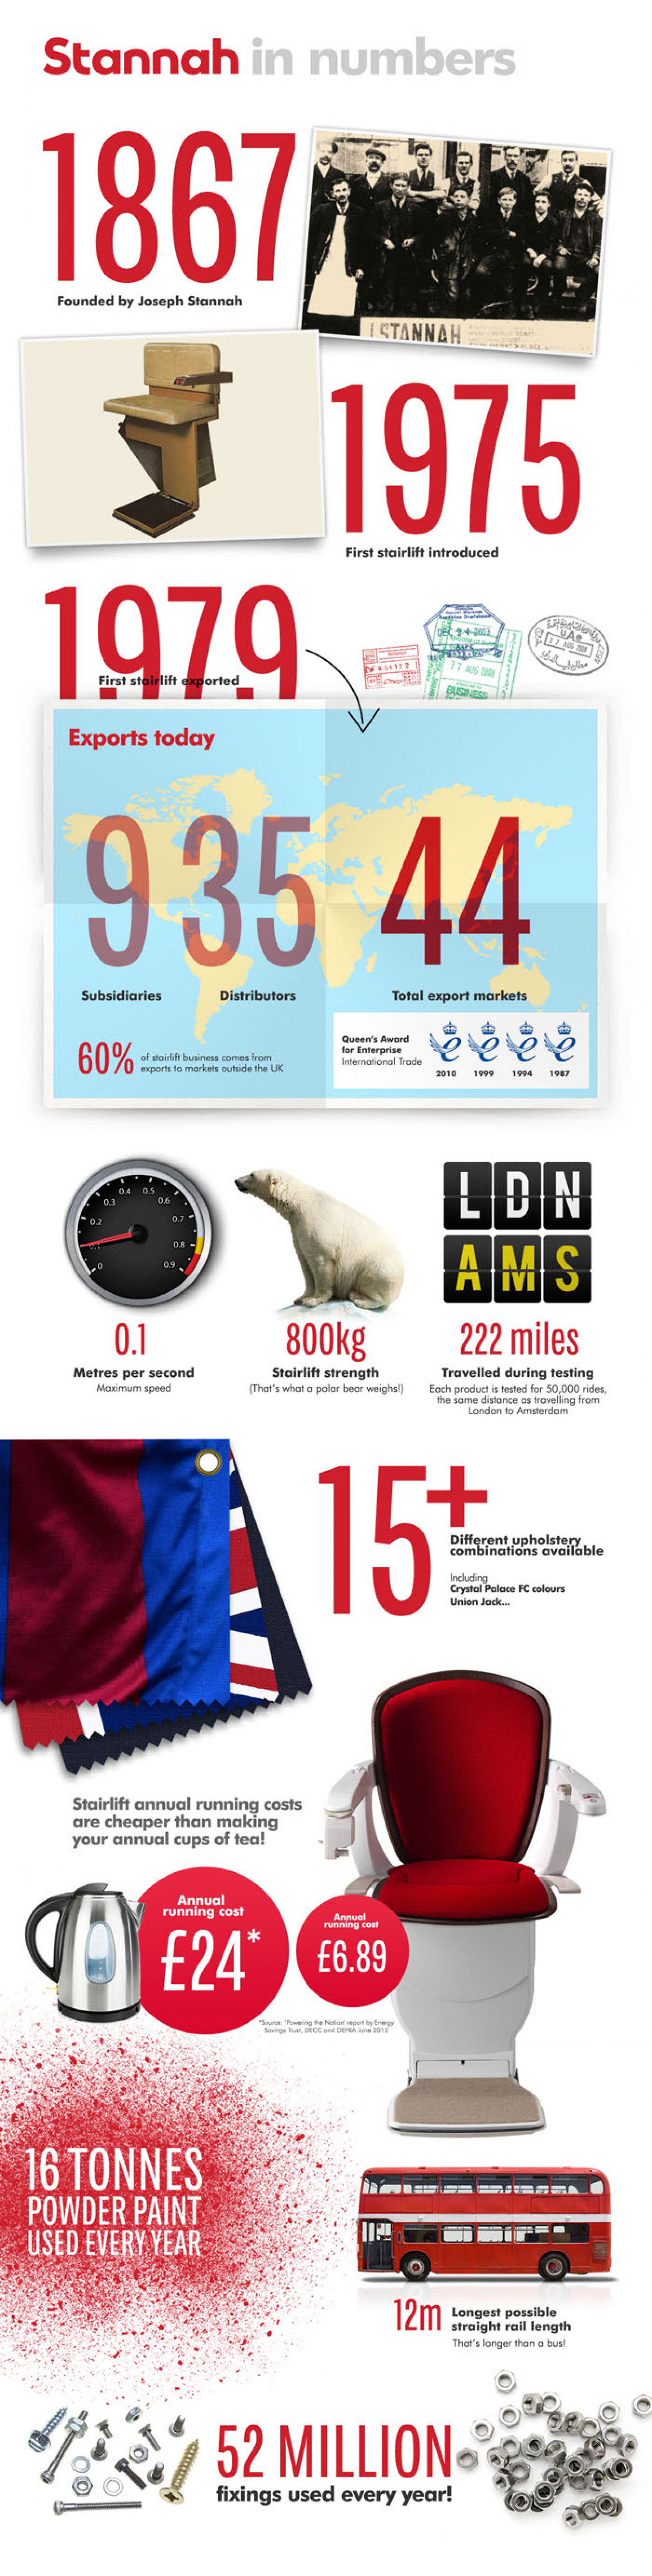 Stannah In Numbers Infographic